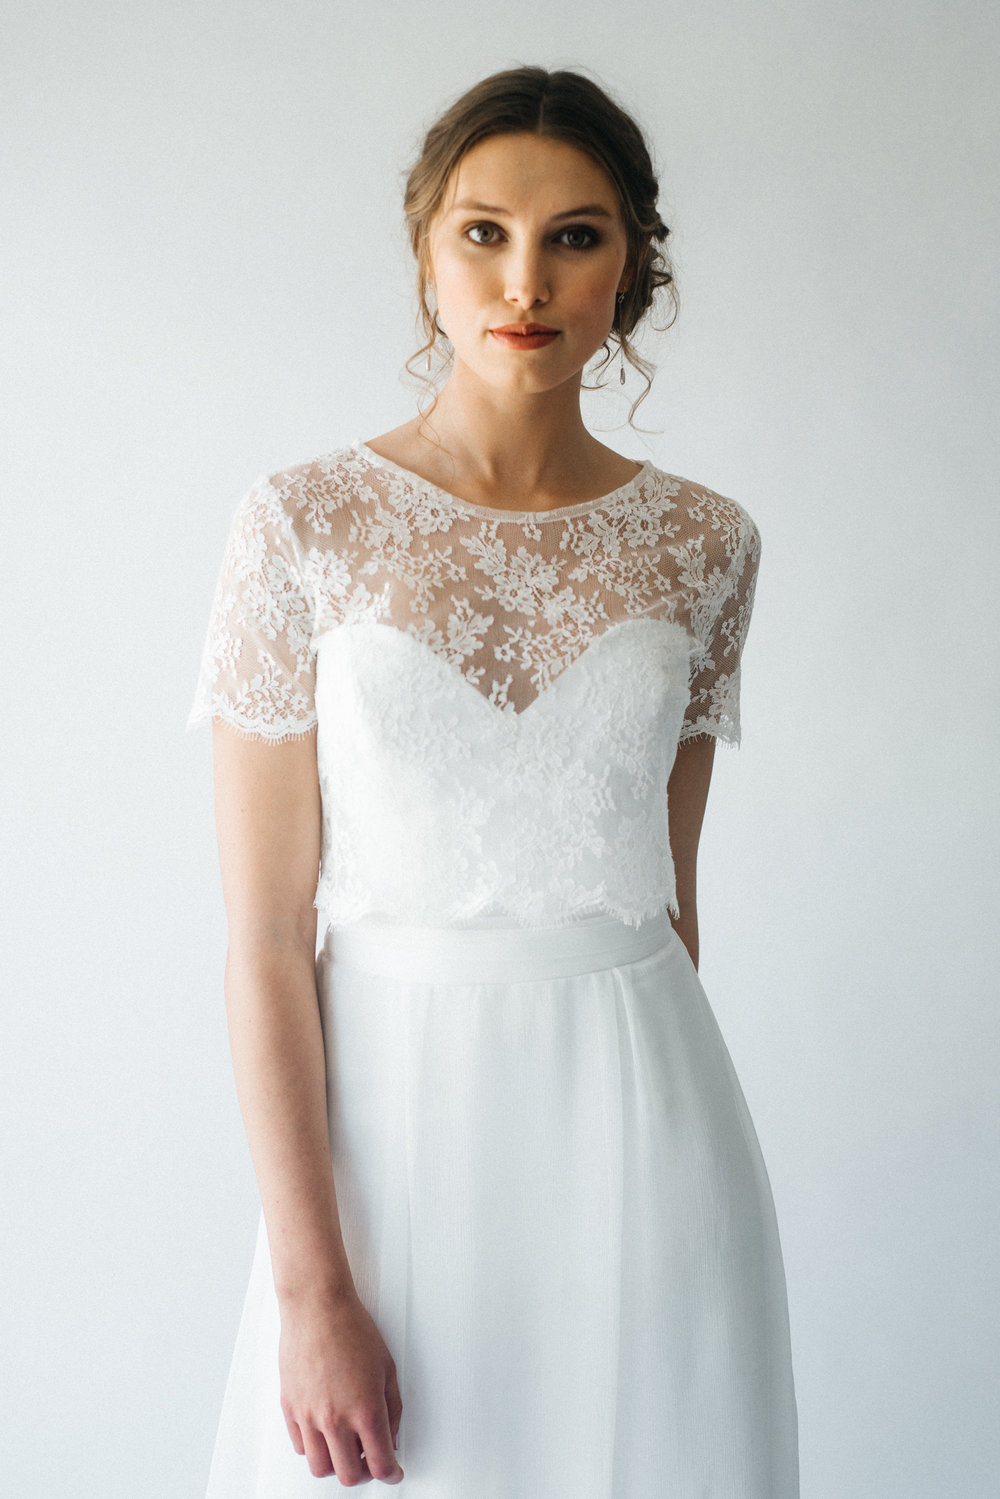 Lace Wedding Gown Falmouth.jpg